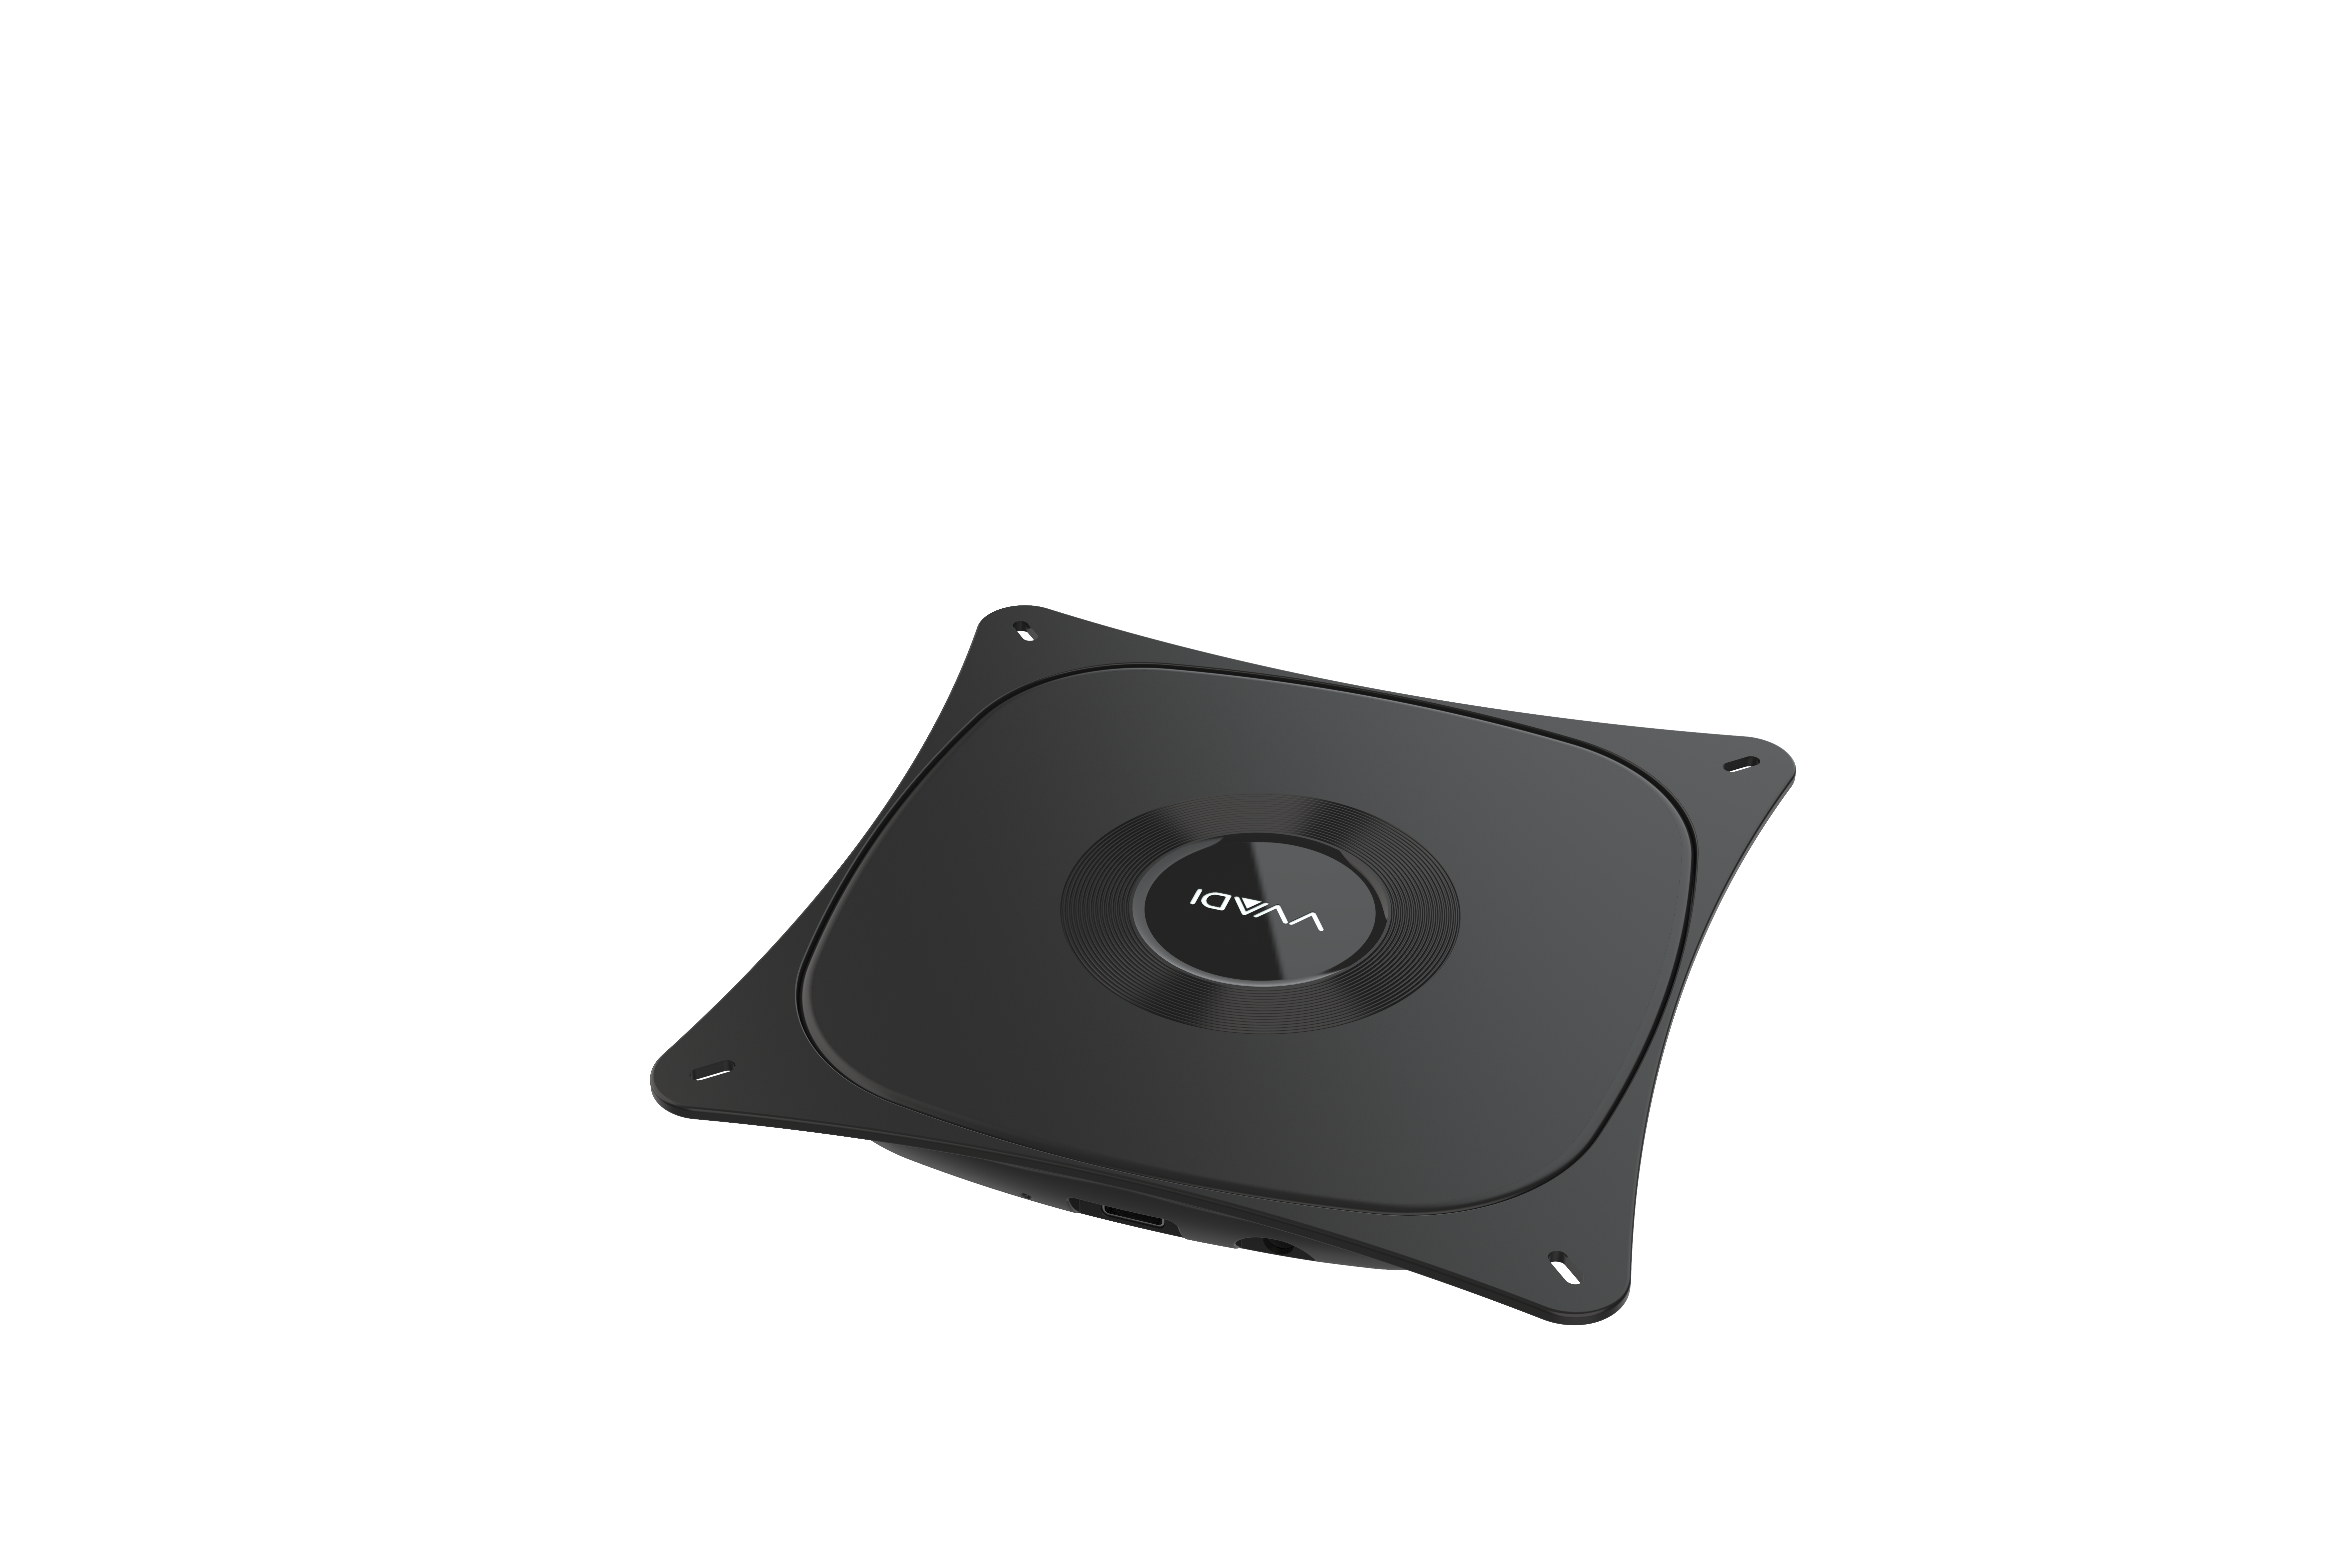 K04 Wireless Charger 10w Fast Charge Support Qi Standard 6-20mm for Hotel Restaurant Airport black